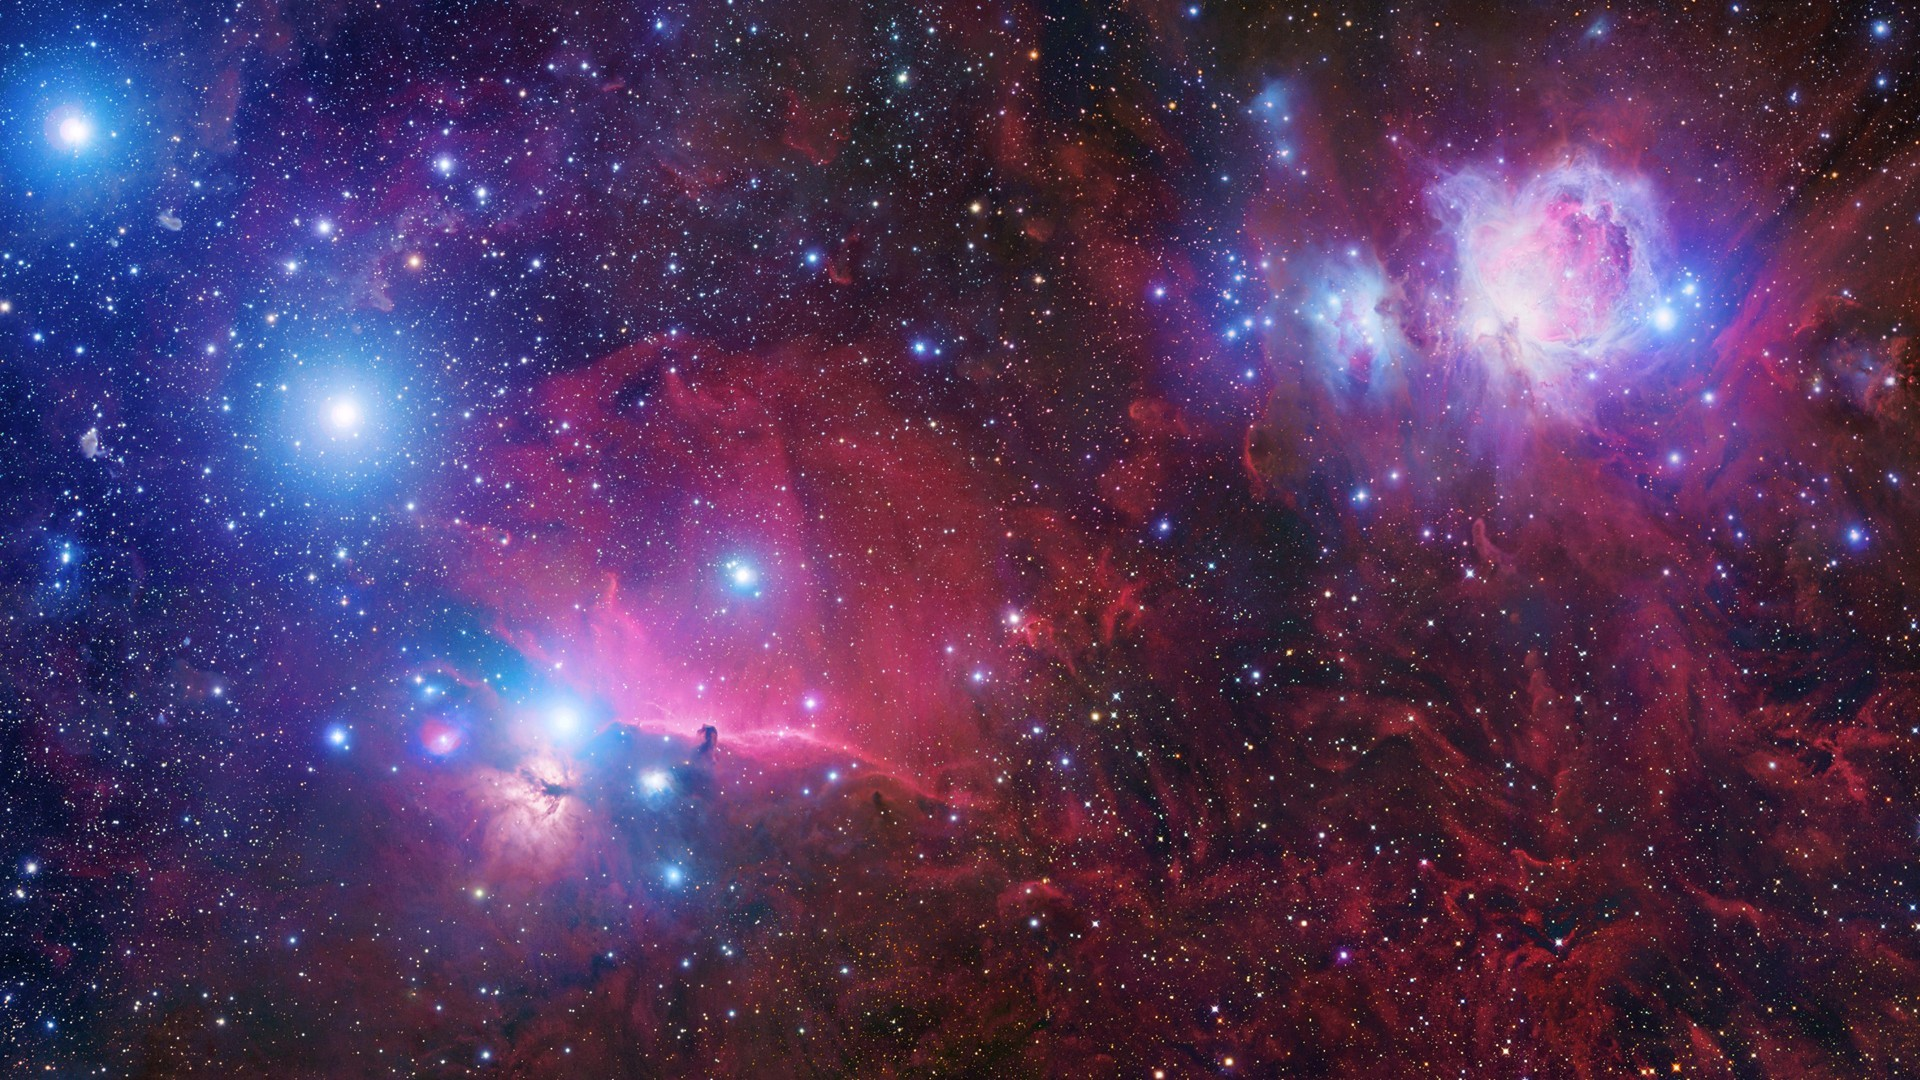 Space Galaxy 19 HD Images Wallpapers   Vectors and HD Wallpapers    Pinterest   Hd images, Galaxy hd and Wallpaper